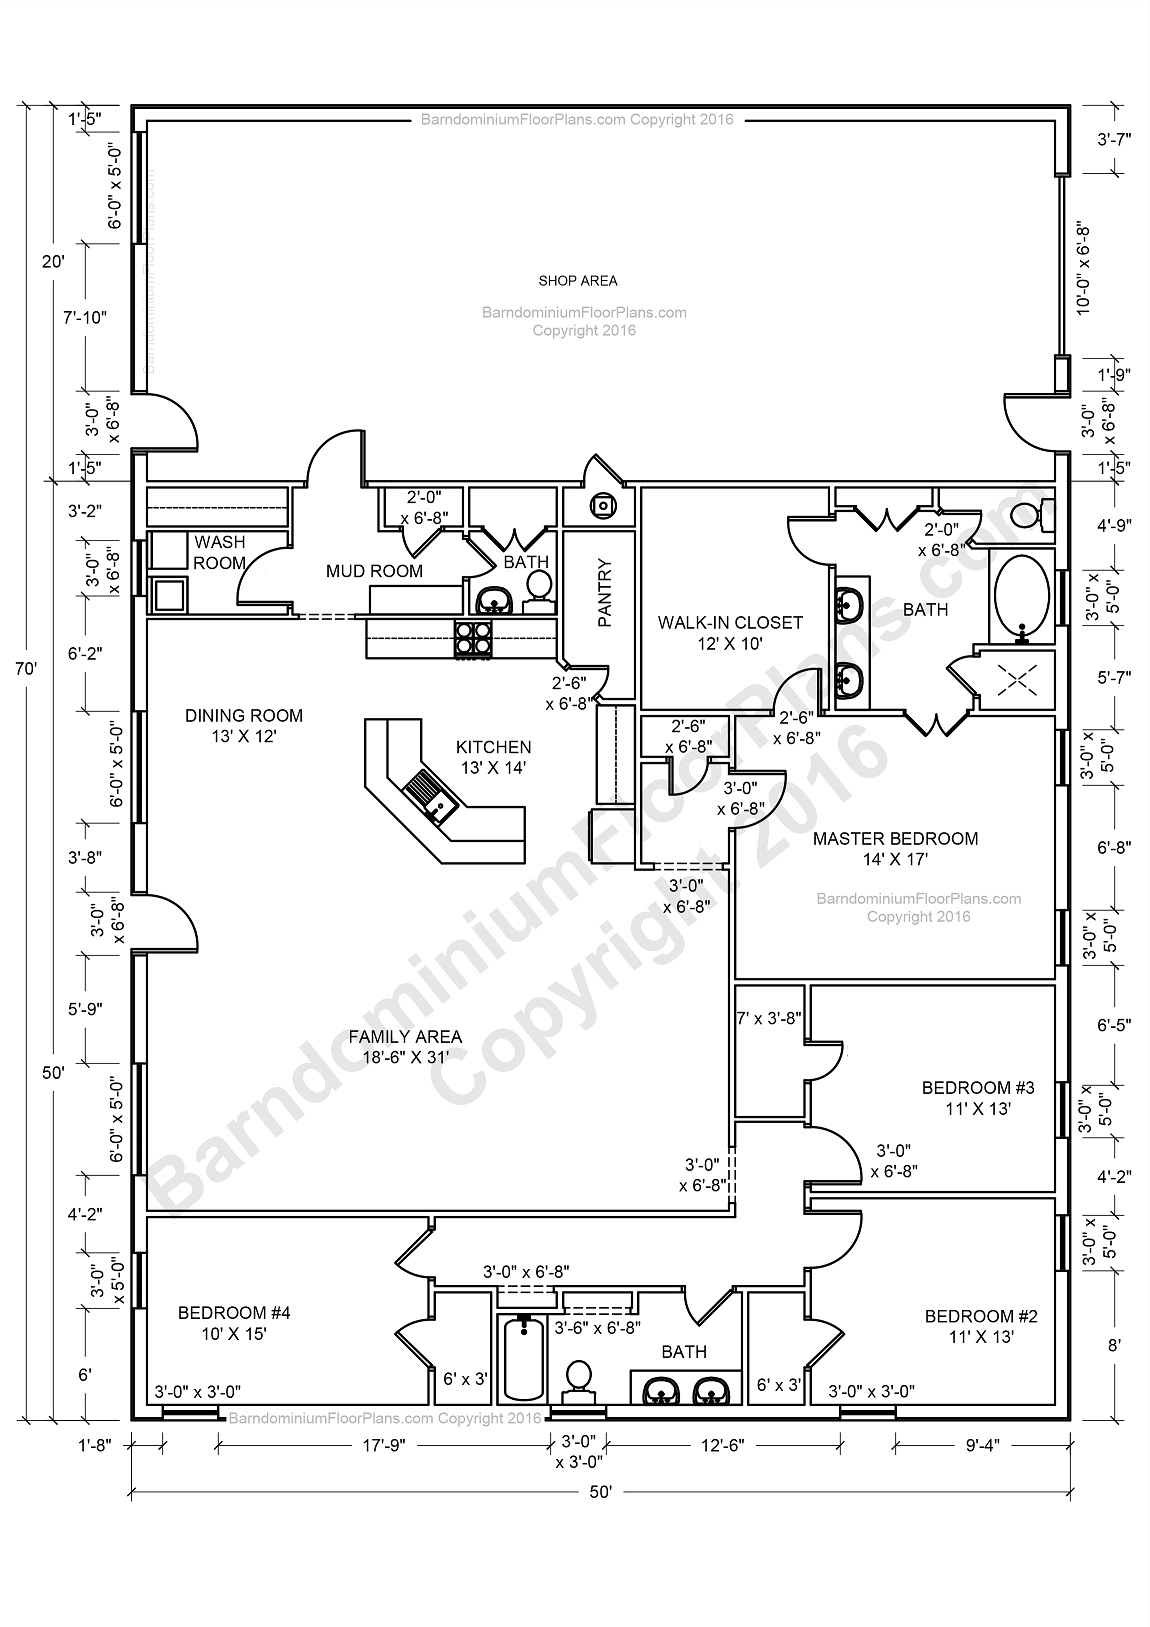 Barndominium floor plans barndominium floor plans 1 800 for Barn house floor plans